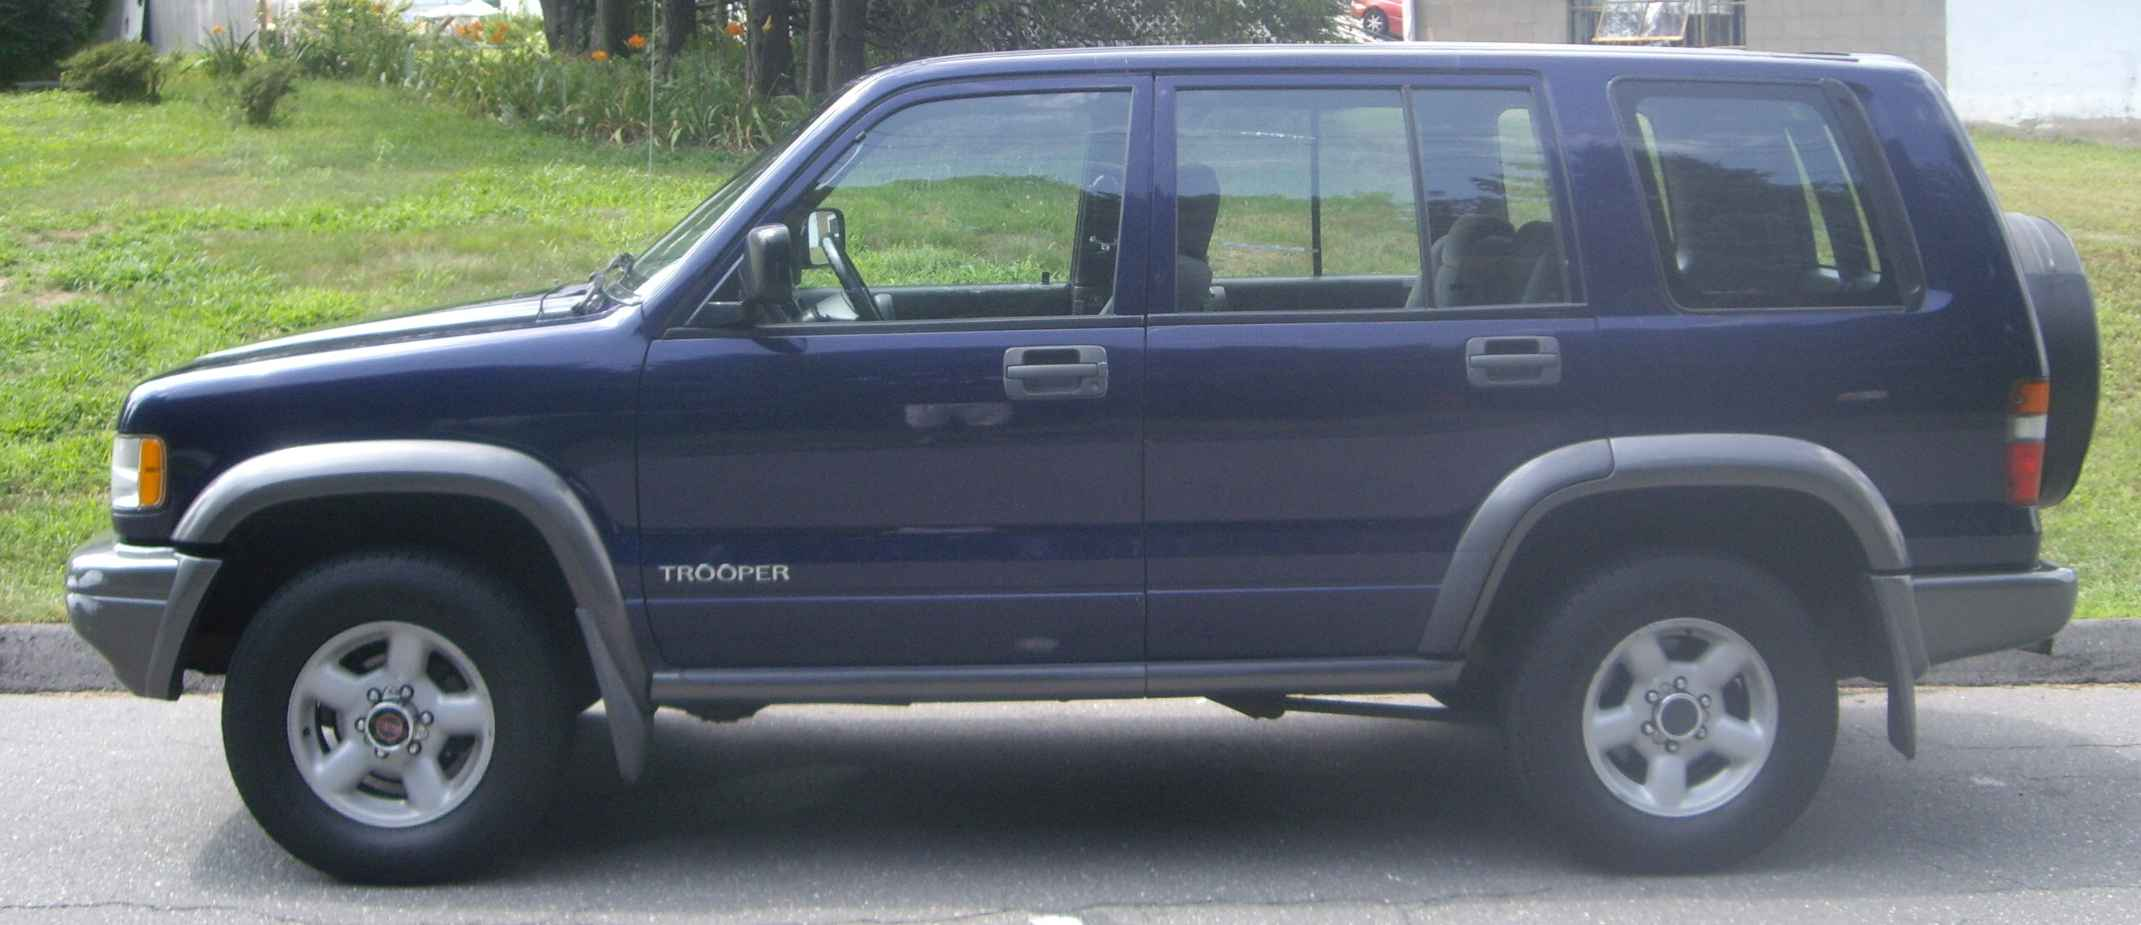 1995 Isuzu Trooper #16